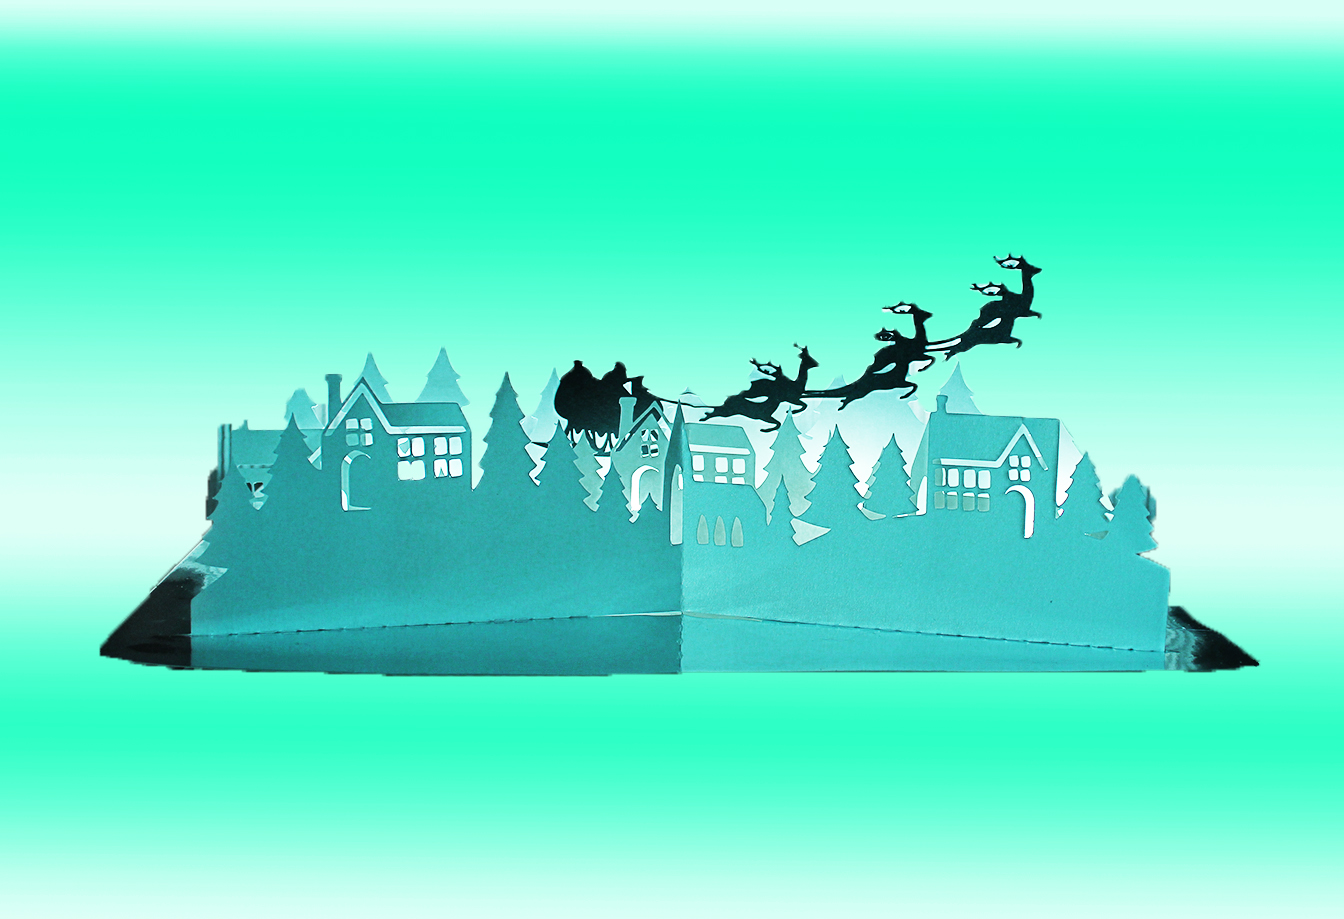 Christmas Village pop up greetings card example image 1